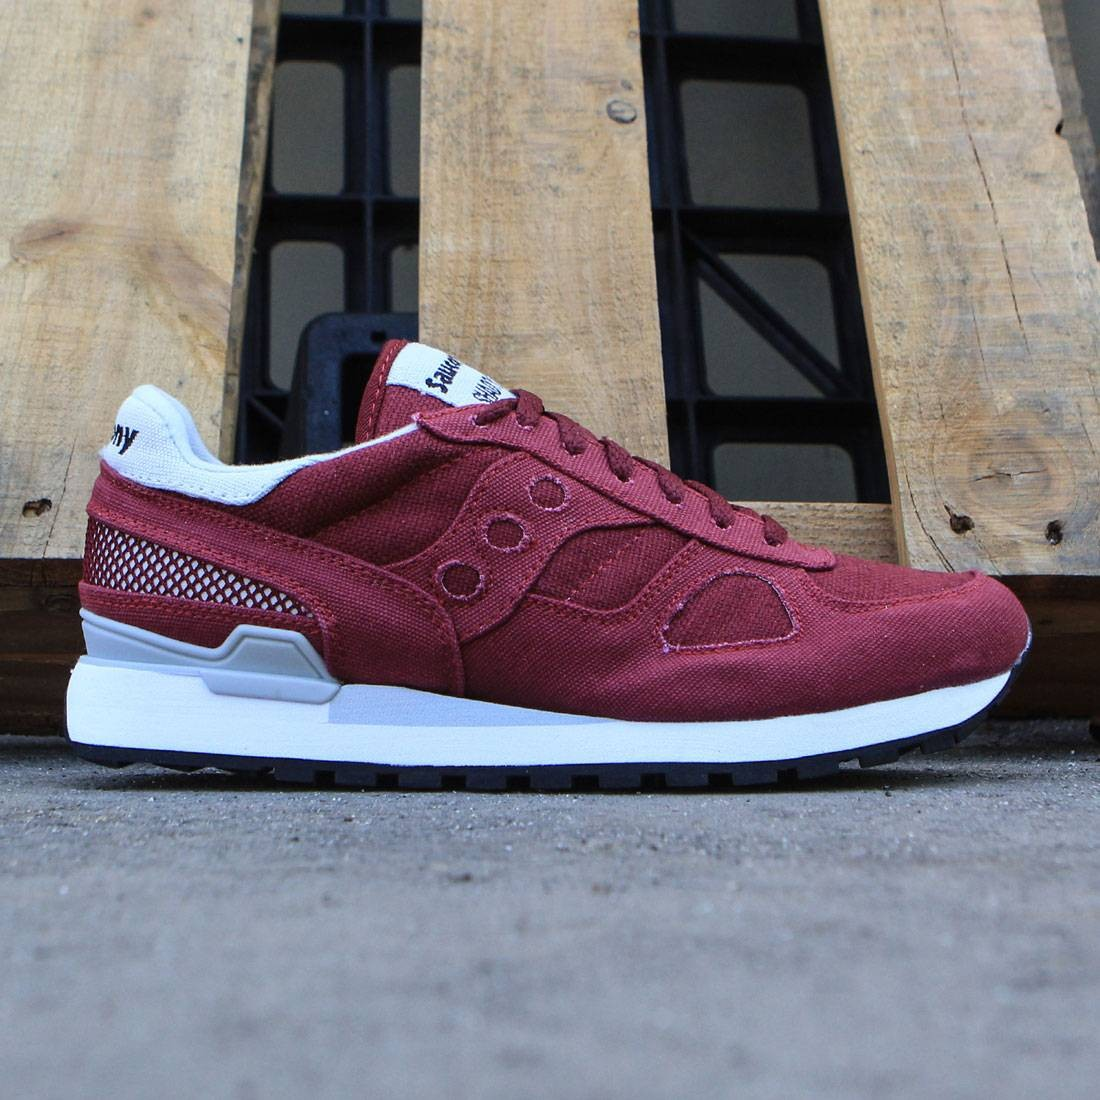 Saucony Shadow 5000 Trainer Burgundy